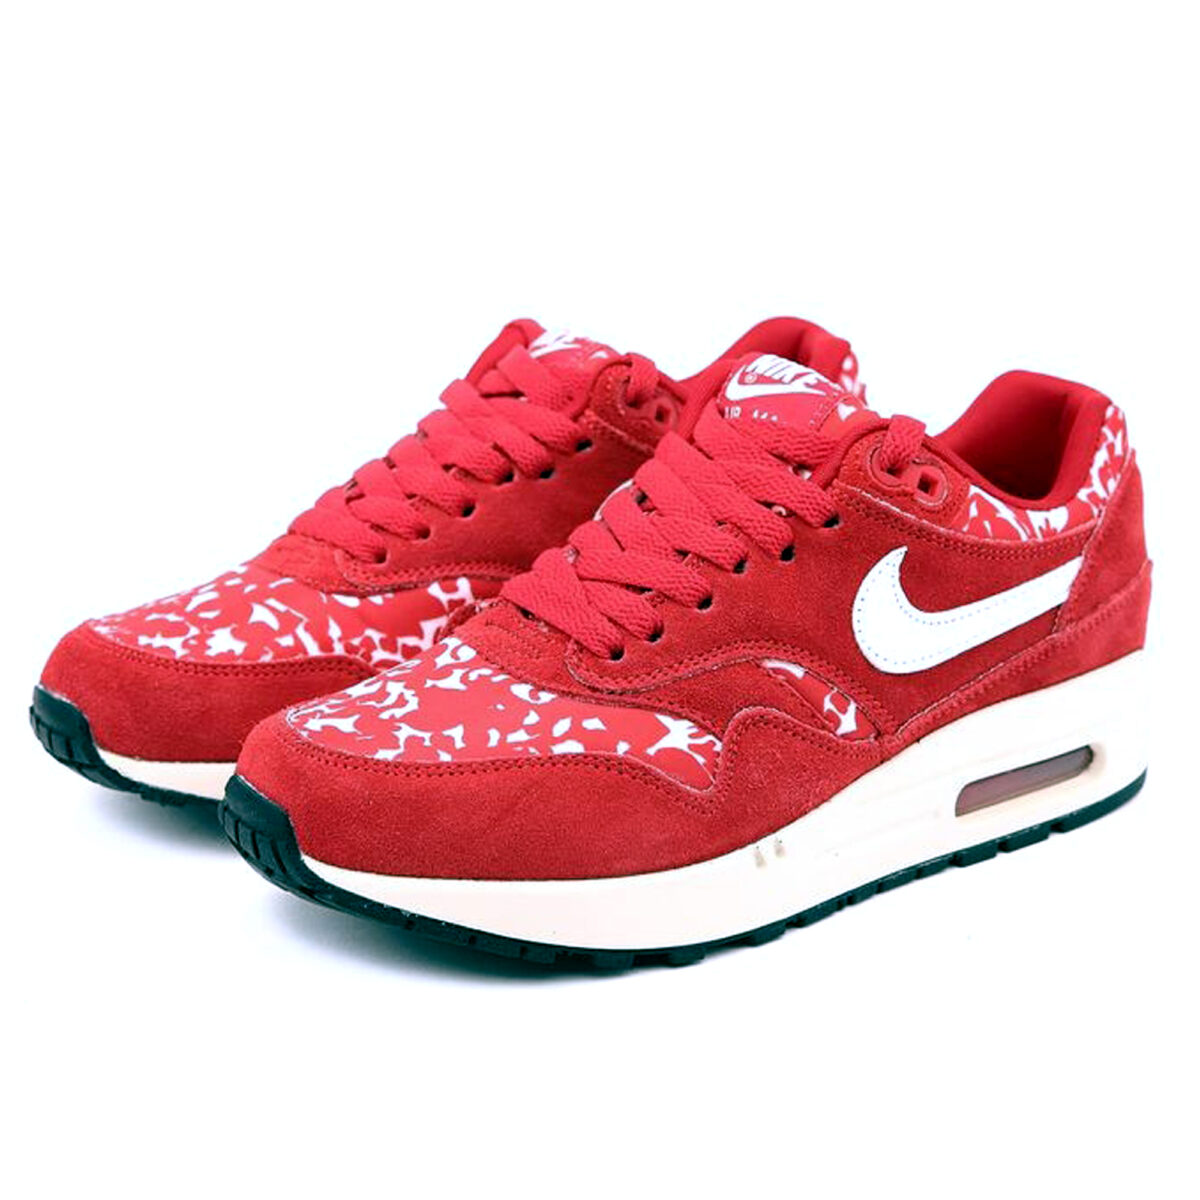 nike air max 1 87 red flower print 528898_600 купить